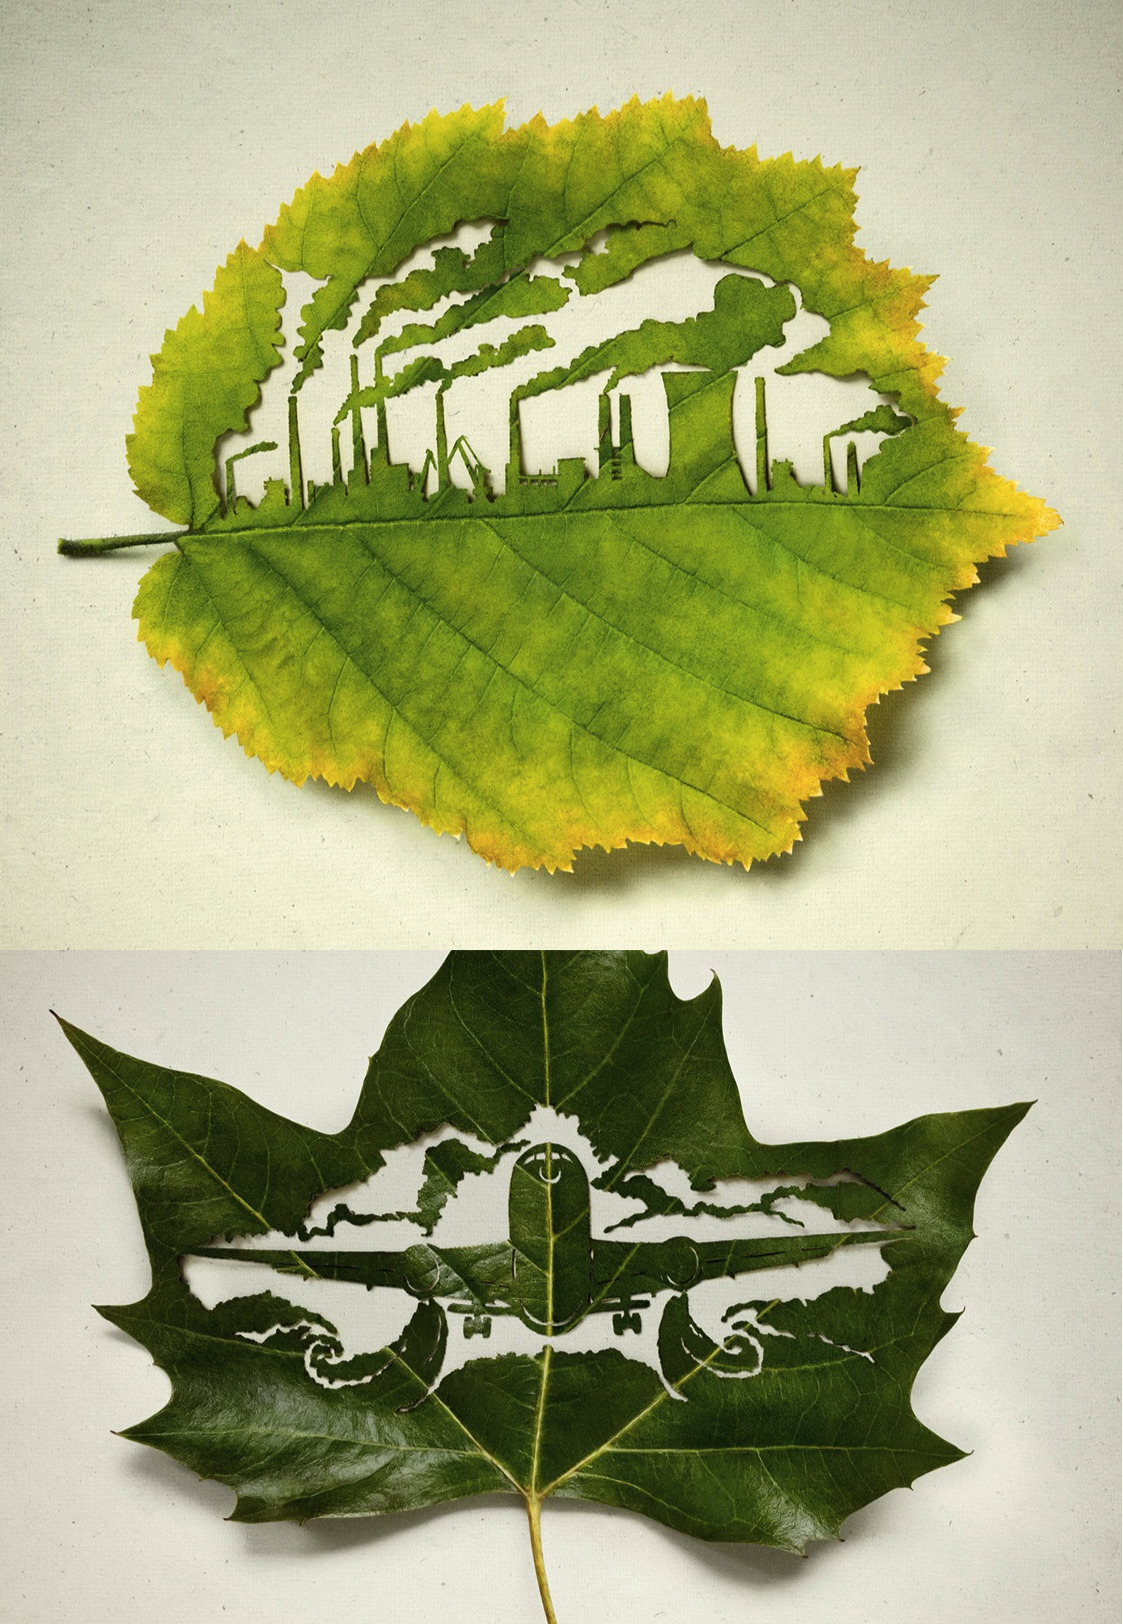 posters-for-good:  Every leaf traps CO2 - Leagas Delaney for Plant for the planet (via szymon)